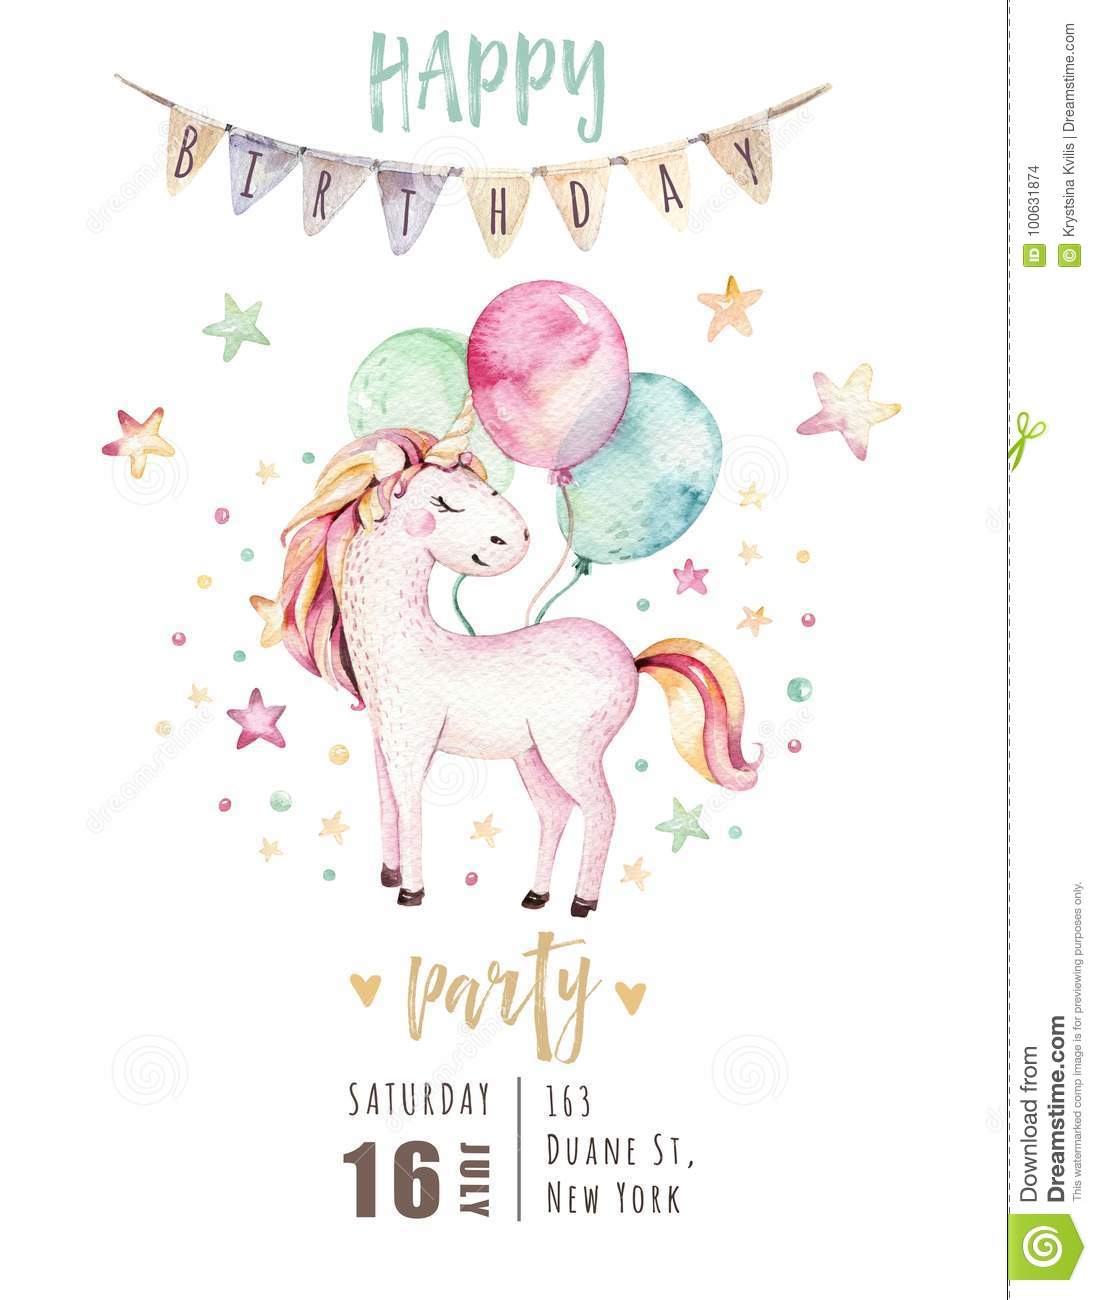 Isolated cute watercolor unicorn invitation card. Nursery unicorns illustration. Princess rainbow unicorns poster